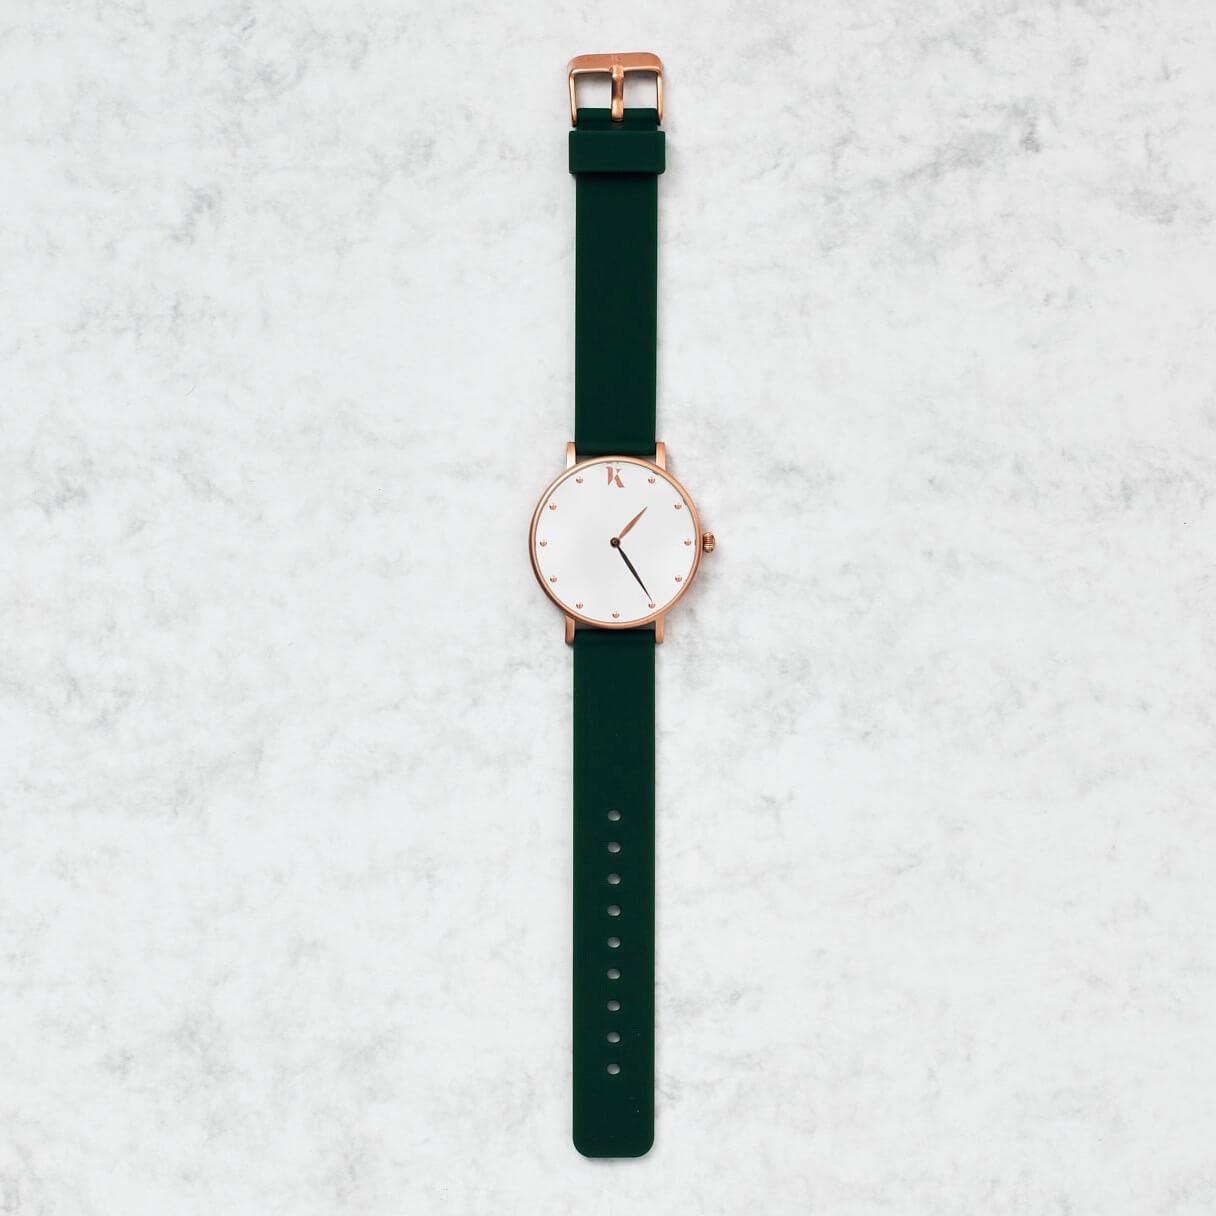 Emerald Green & Rose Gold Silicone Watch